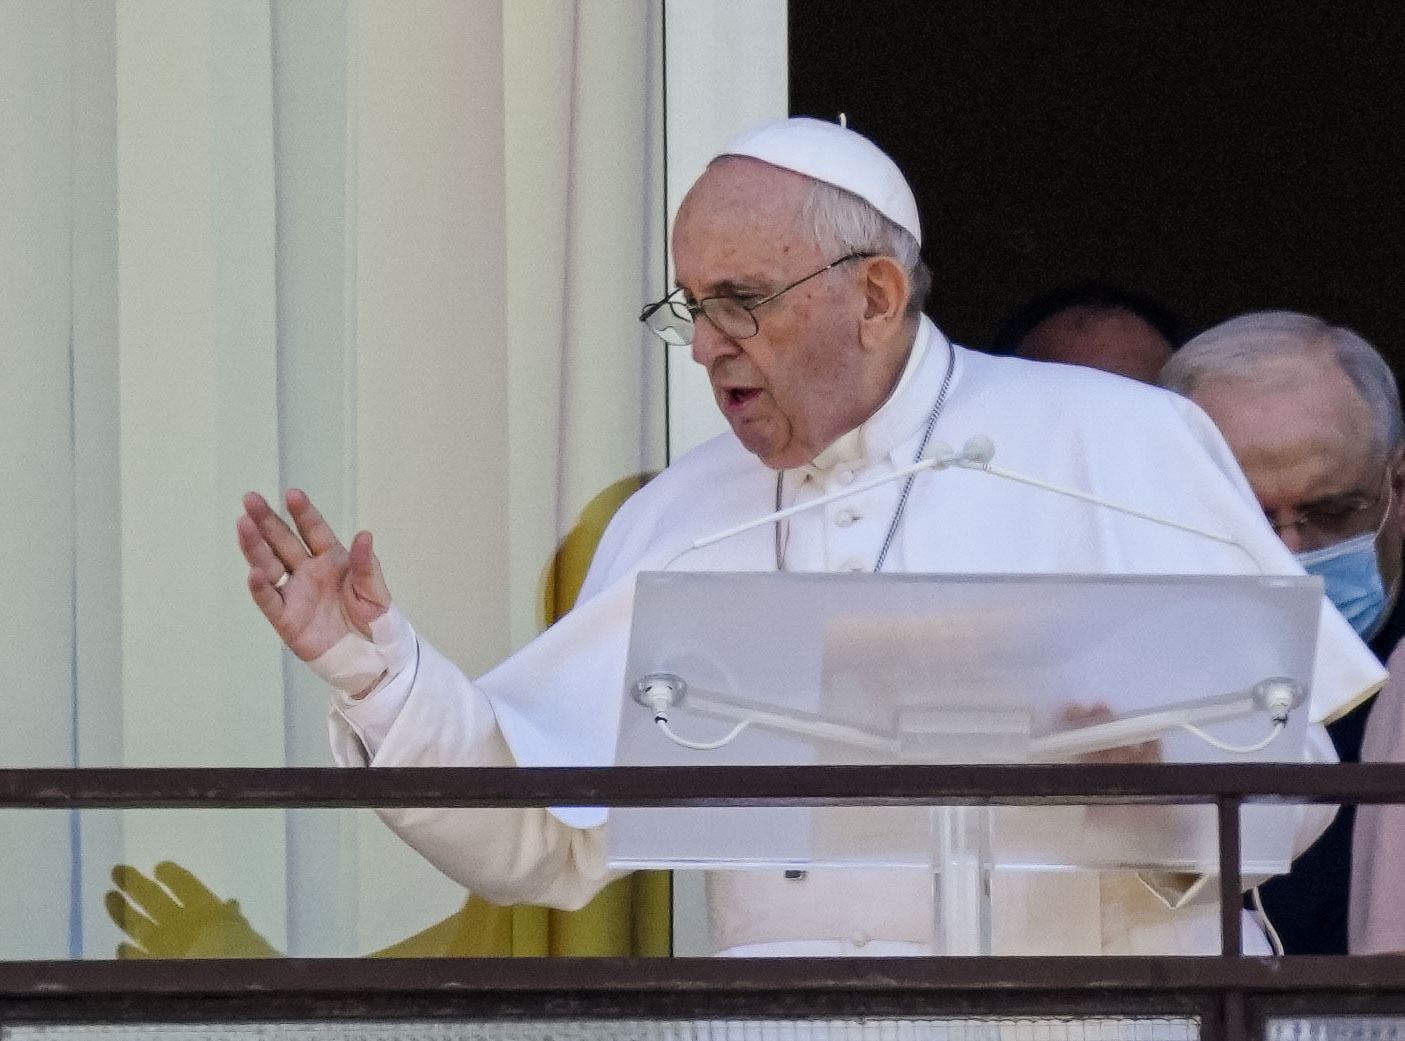 Pope Francis Makes First Public Appearance Since Intestinal Surgery